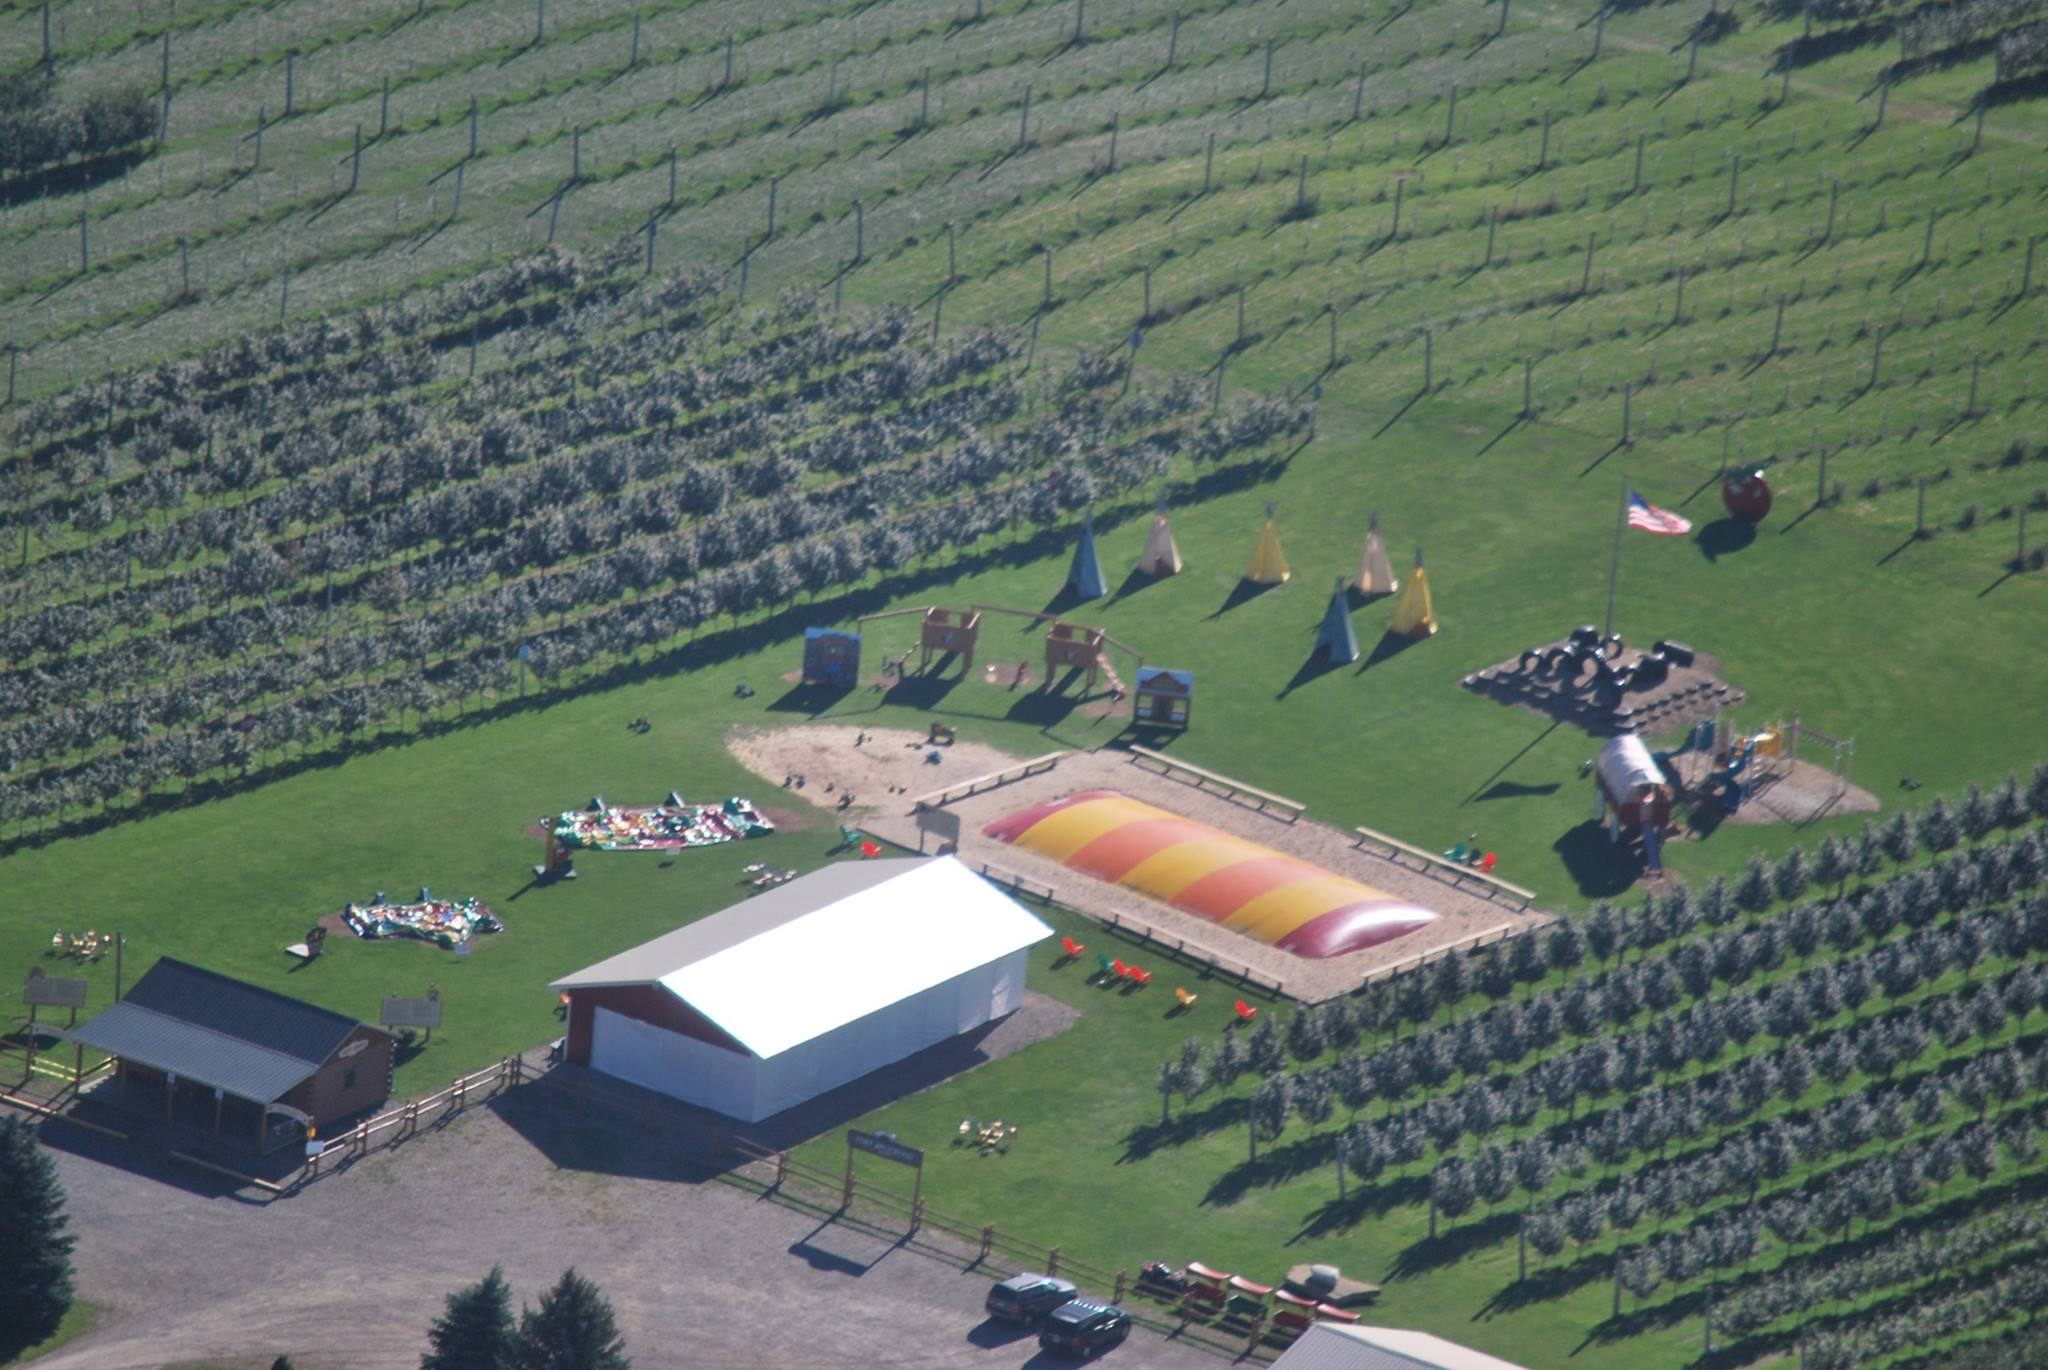 Aerial view of apple orchard